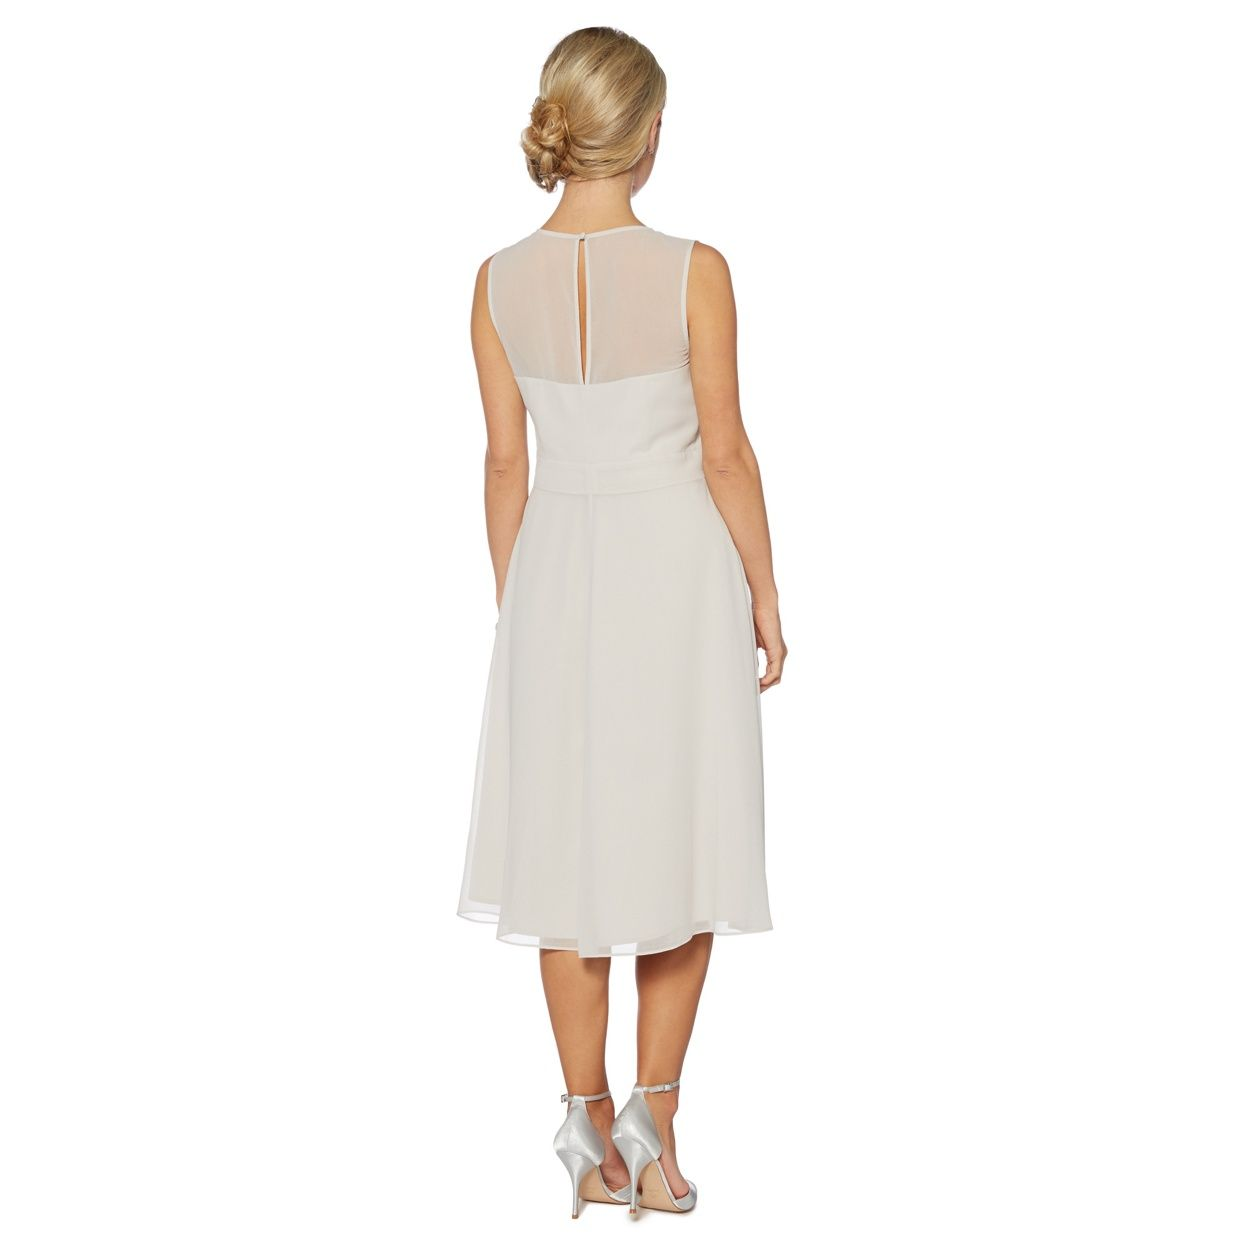 Debut silver floral embroidered waist midi dress at debenhams debut silver floral embroidered waist midi dress at debenhams bridesmaid ombrellifo Image collections